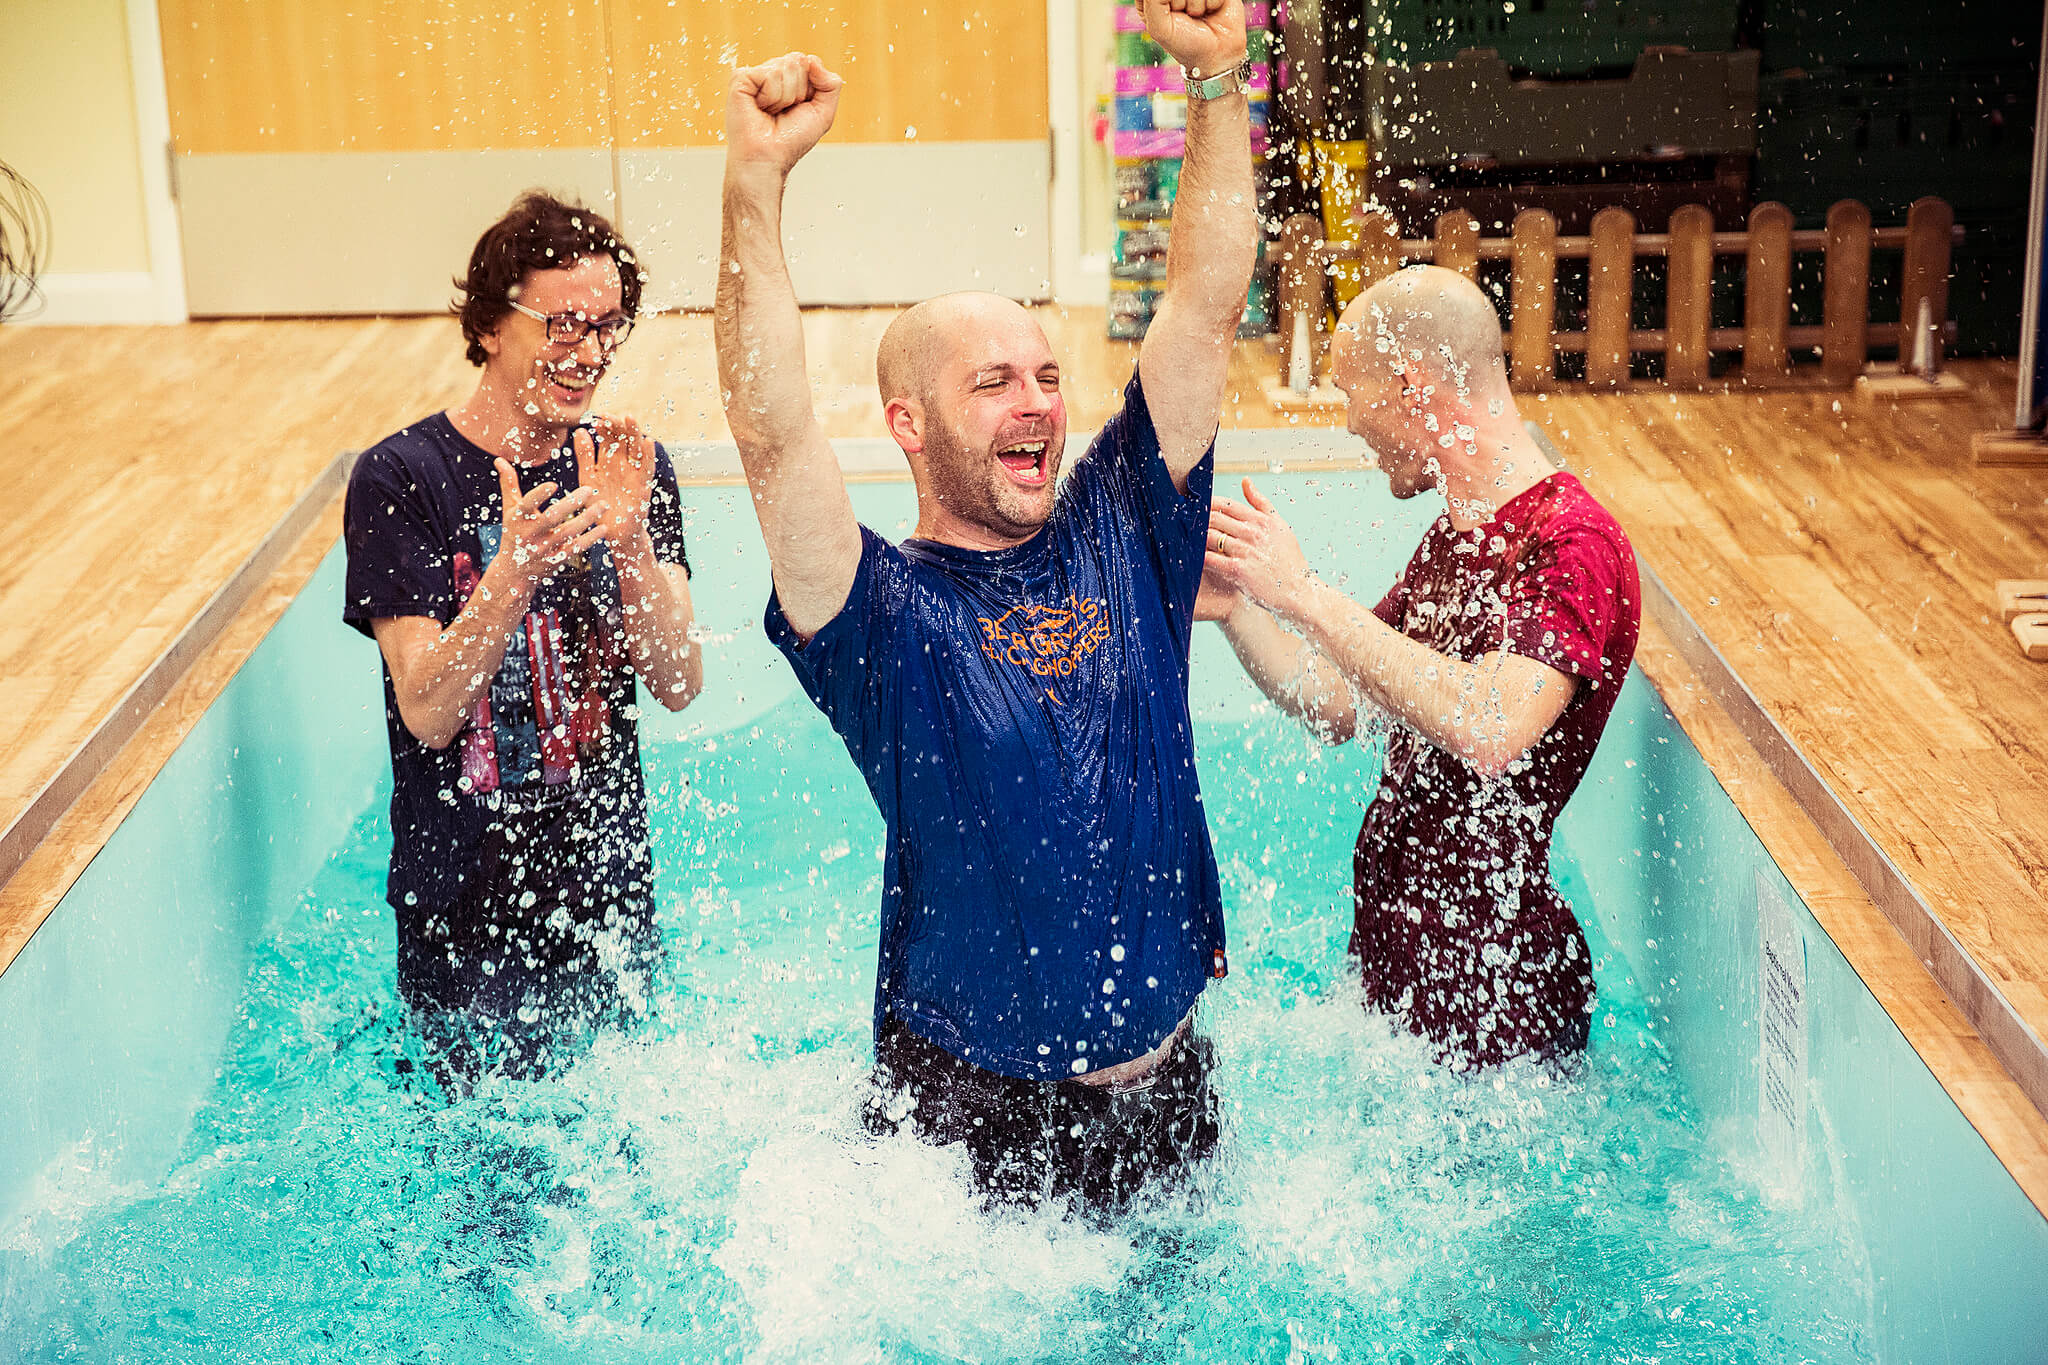 Baptism - If you want to be baptised, we have baptismal services at least once per term.